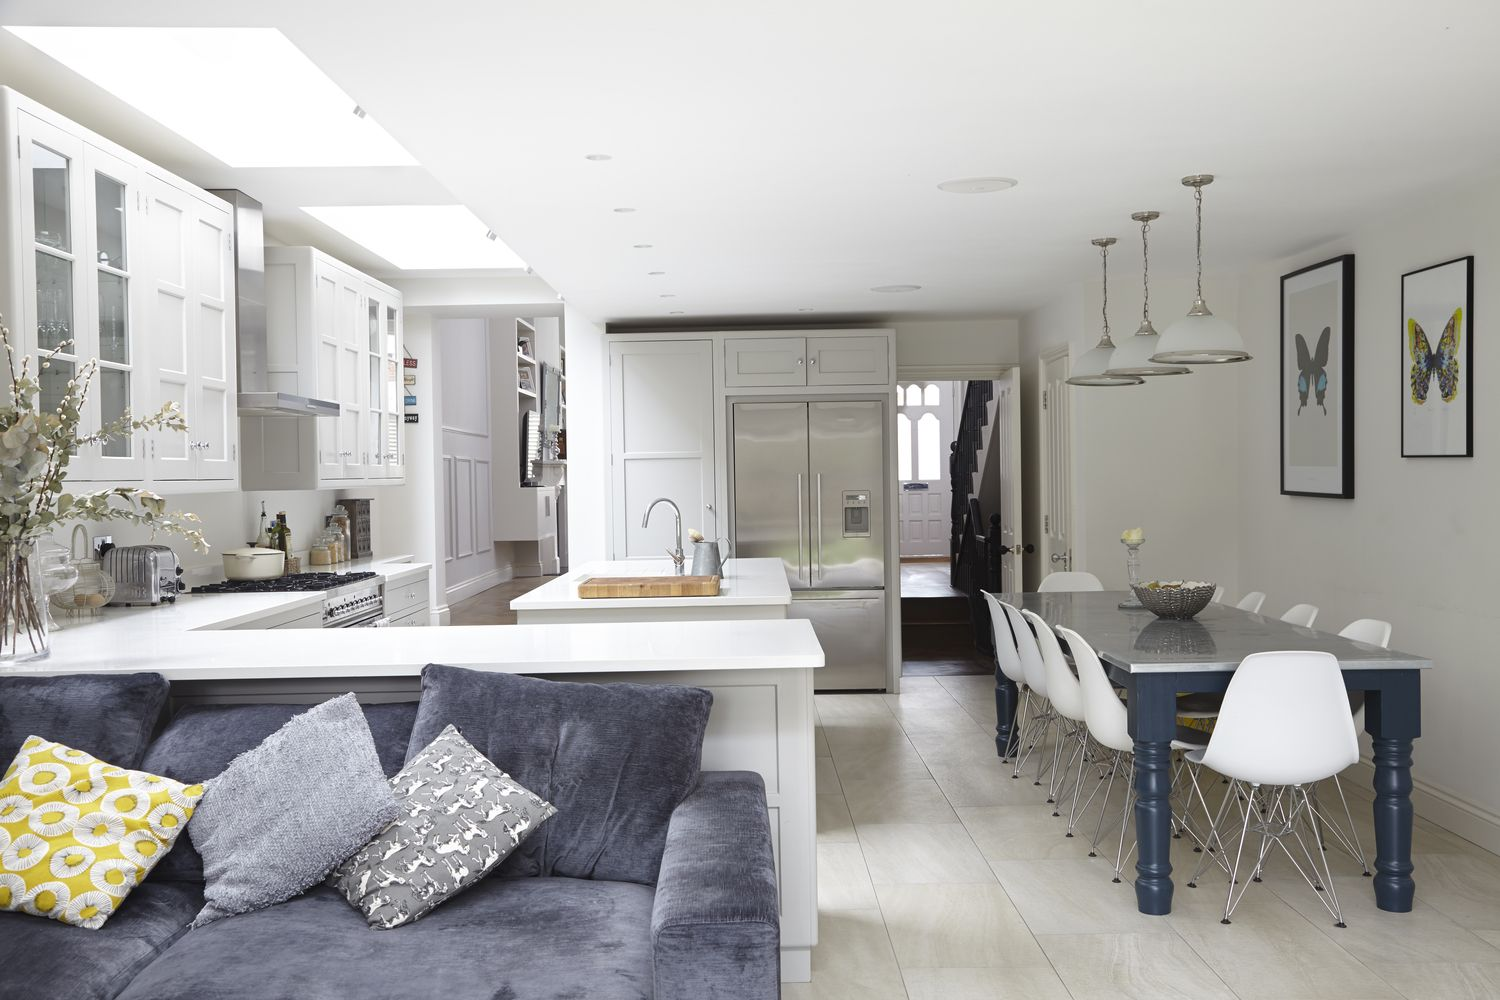 Kitchen of the Week on Houzz UK